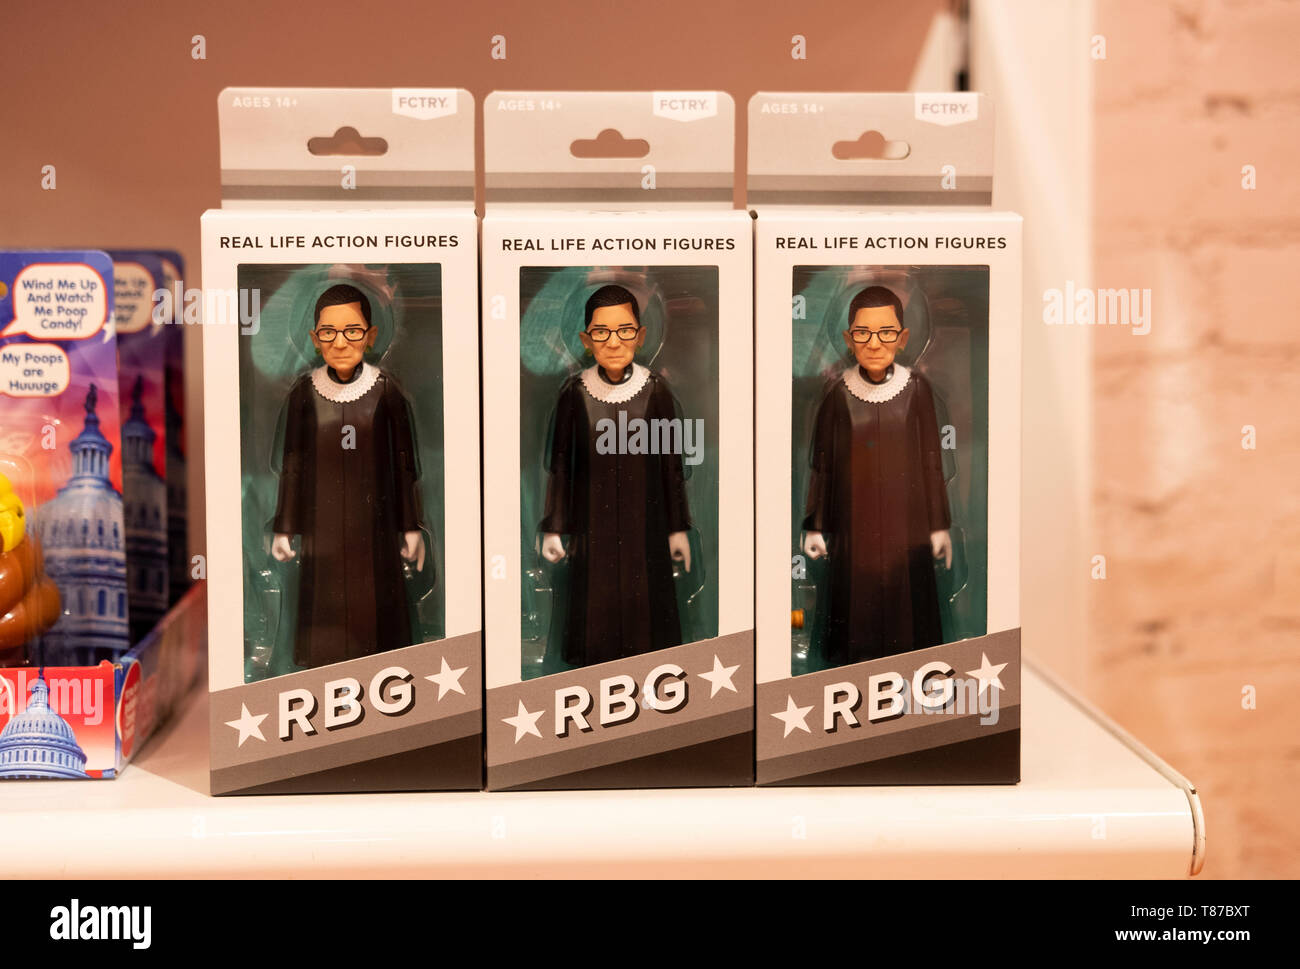 Ruth Bader Ginsburg action figures for sale at It'sugar, a candy by the pound chain store. In Greenwich Village, New York City. Stock Photo